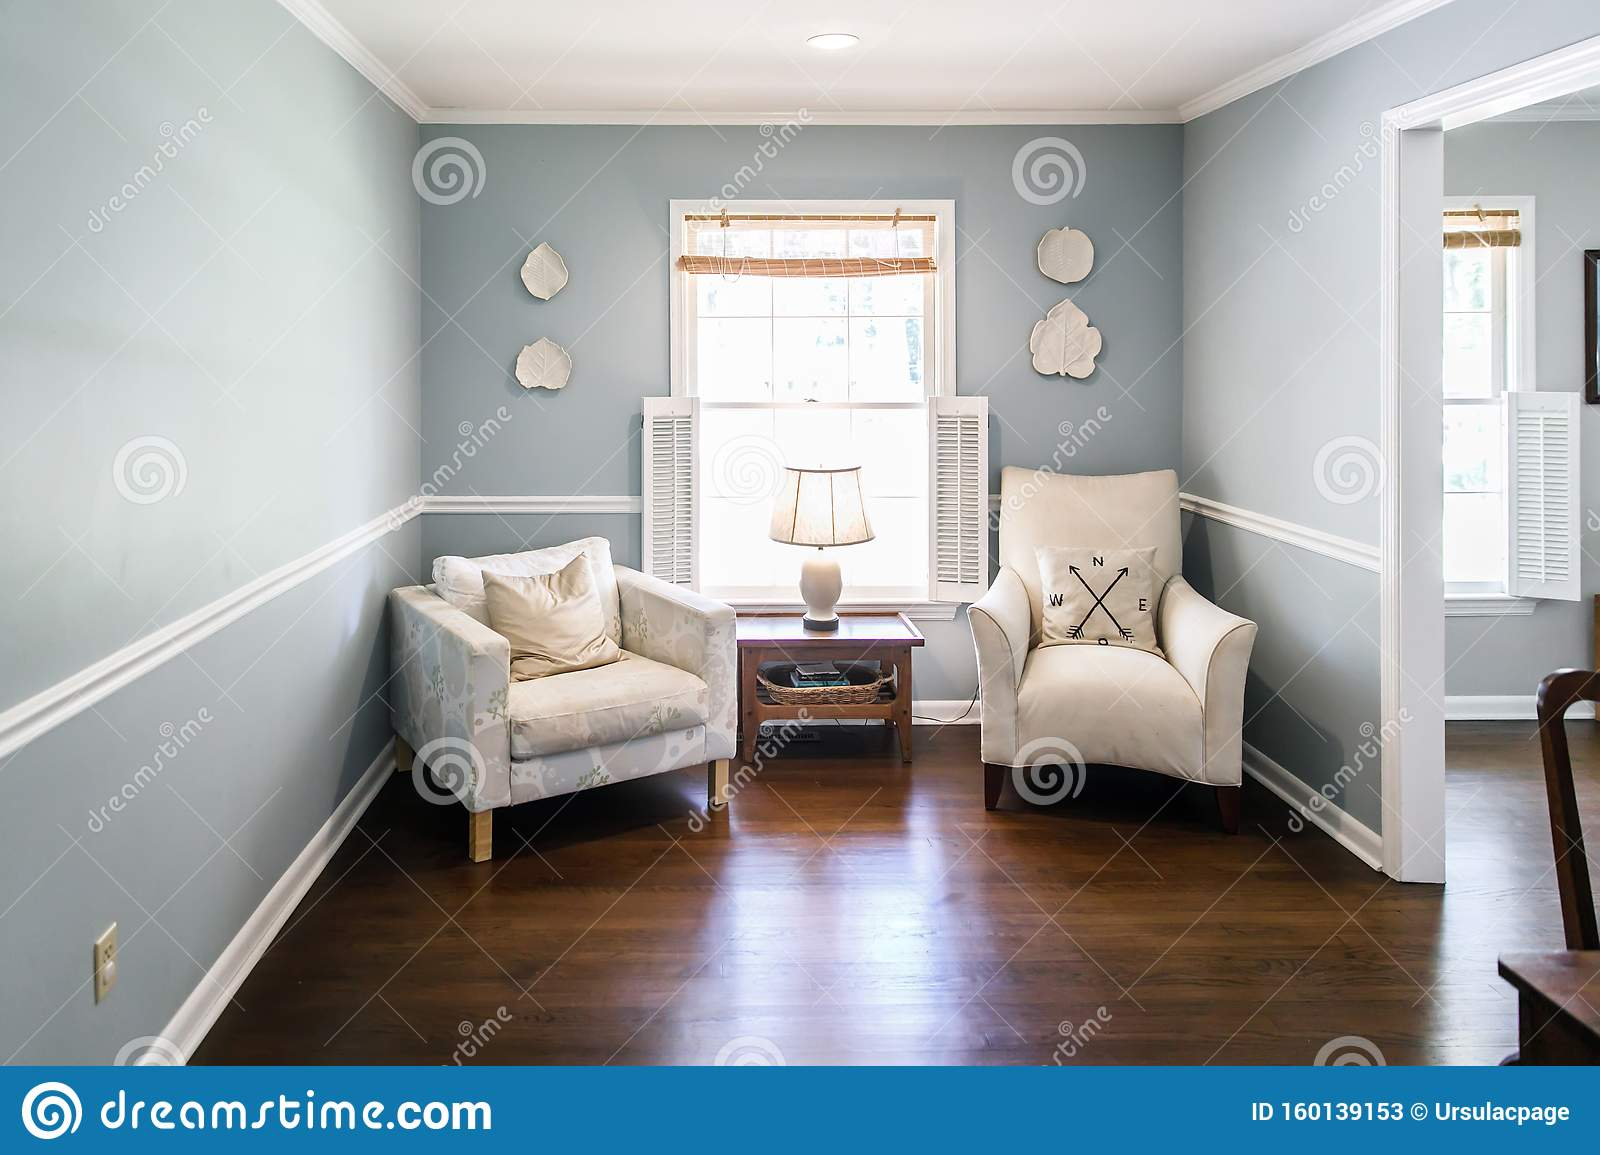 Light Blue Sitting Room With Two Cream Colored Chairs And Decorative Plates On The Wall Stock Image Image Of Apartment Decorative 160139153